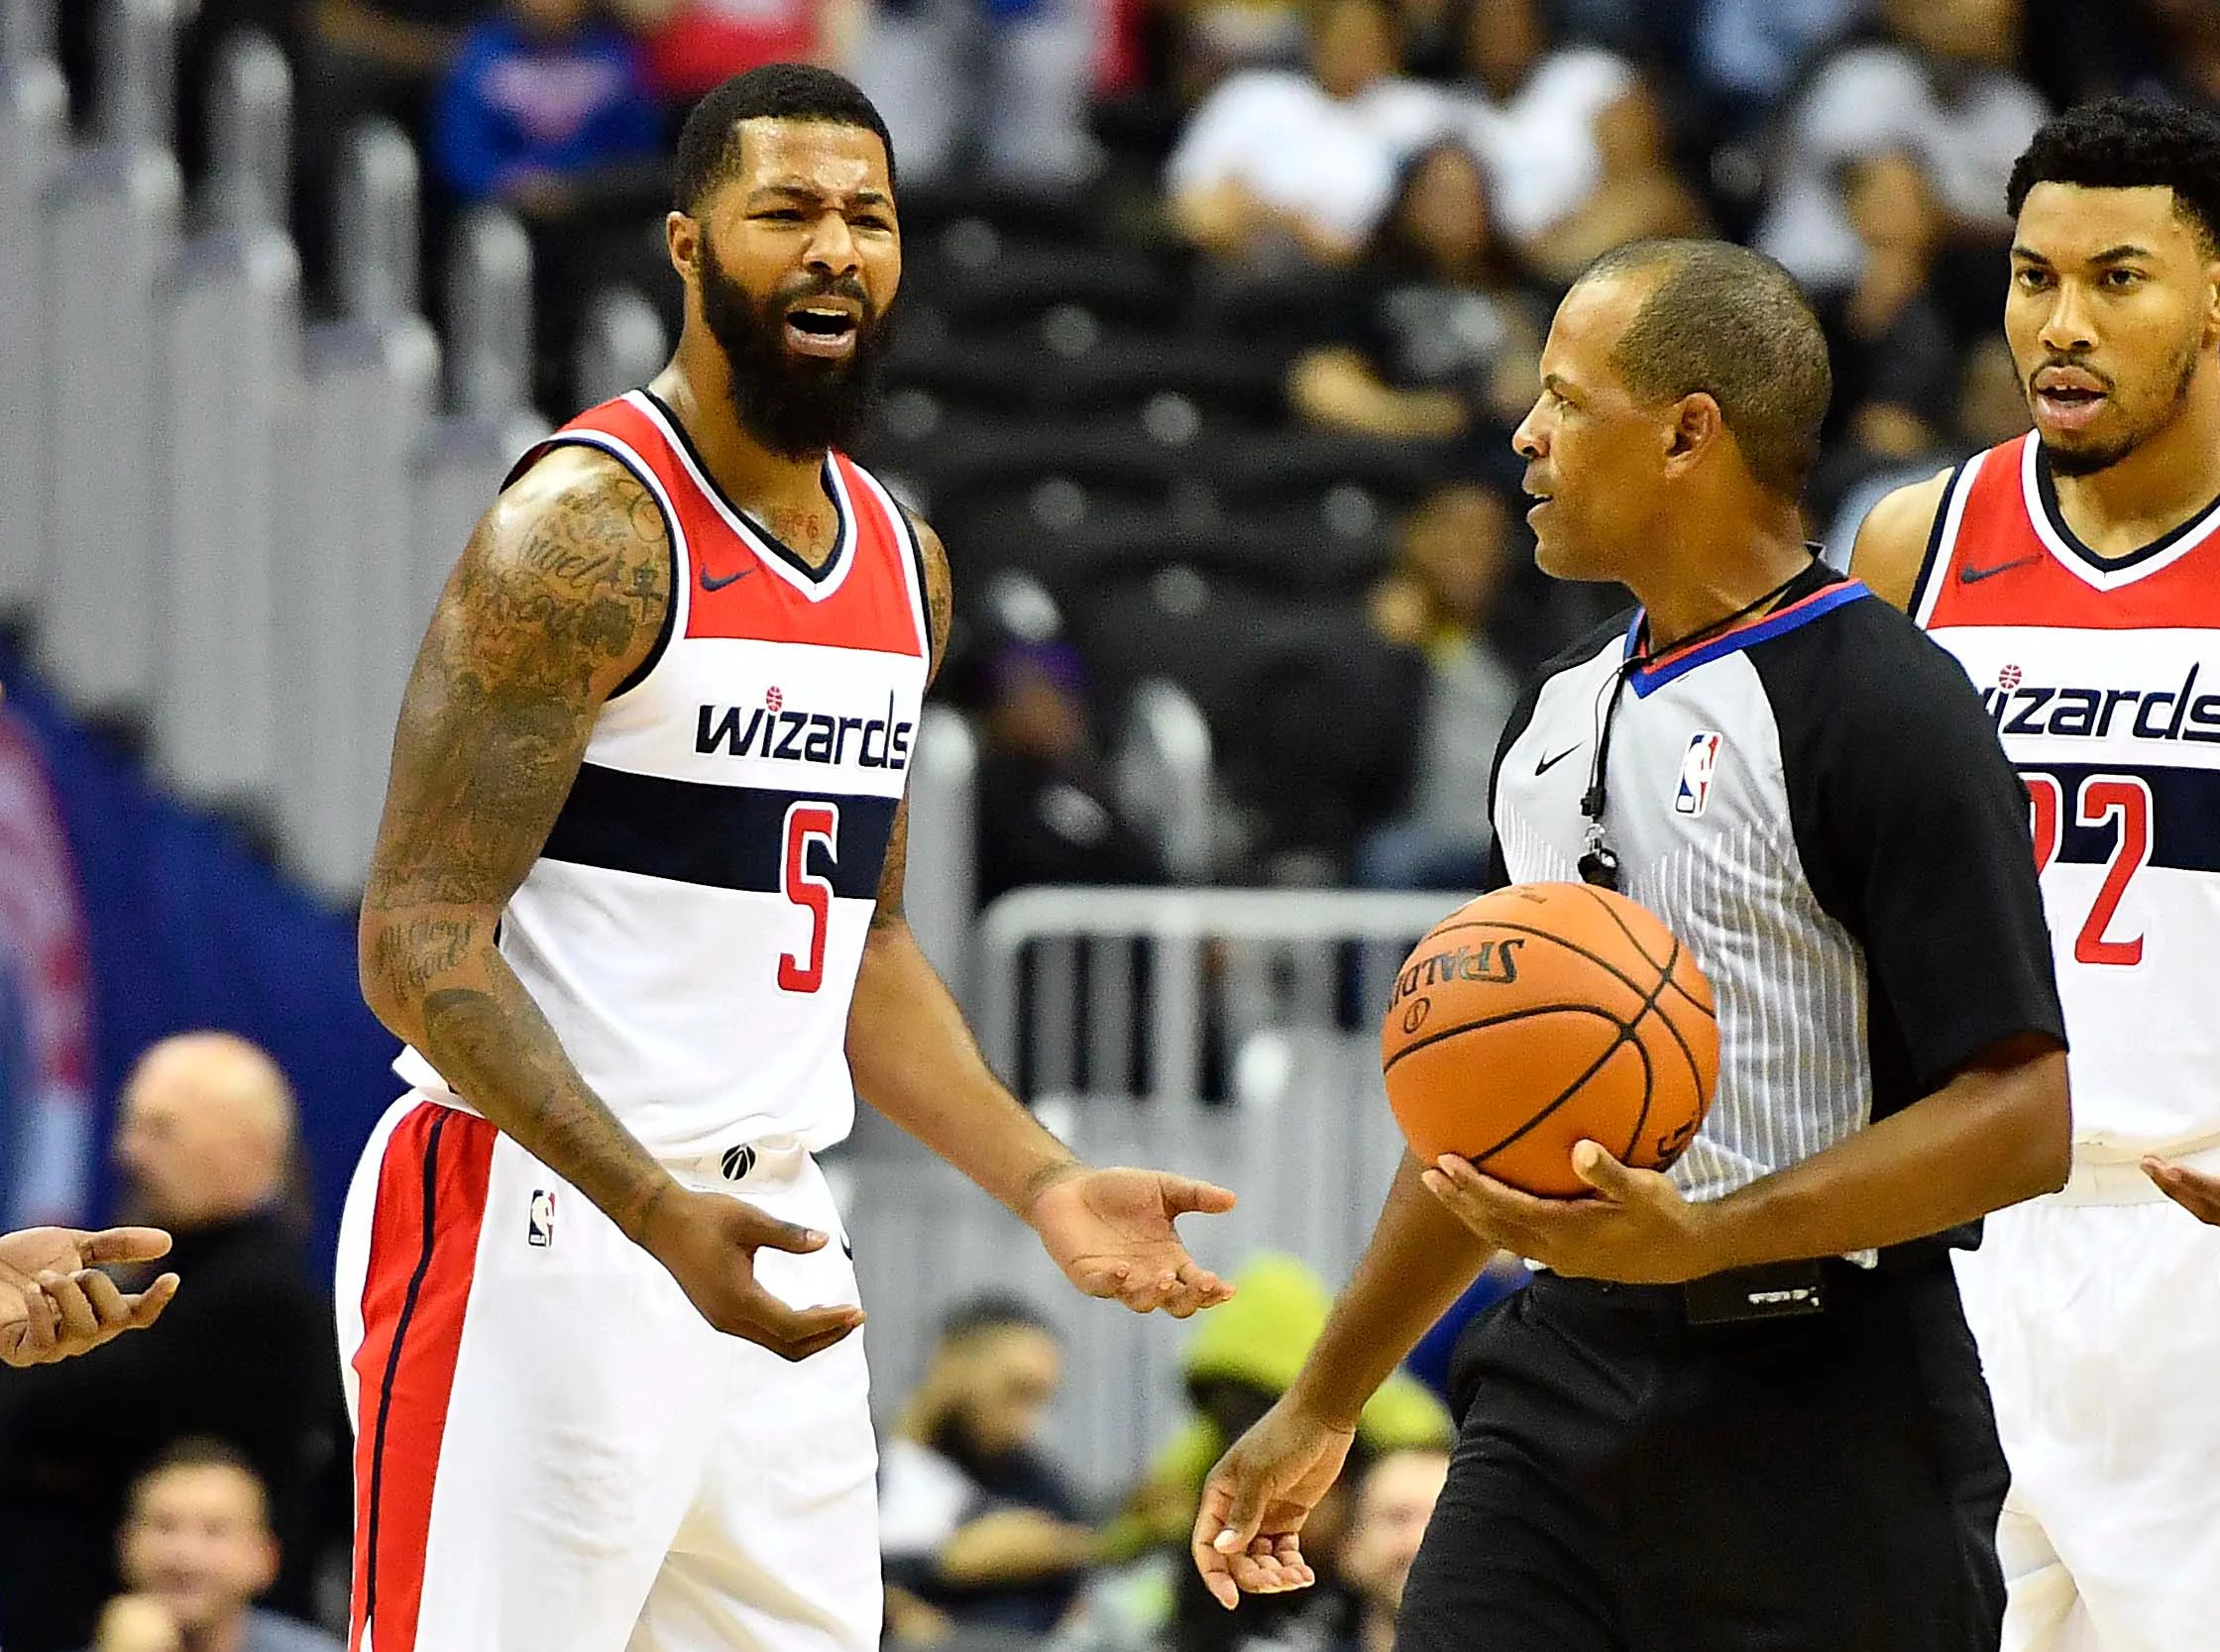 Wizards Markieff Morris Traded Hours After Local